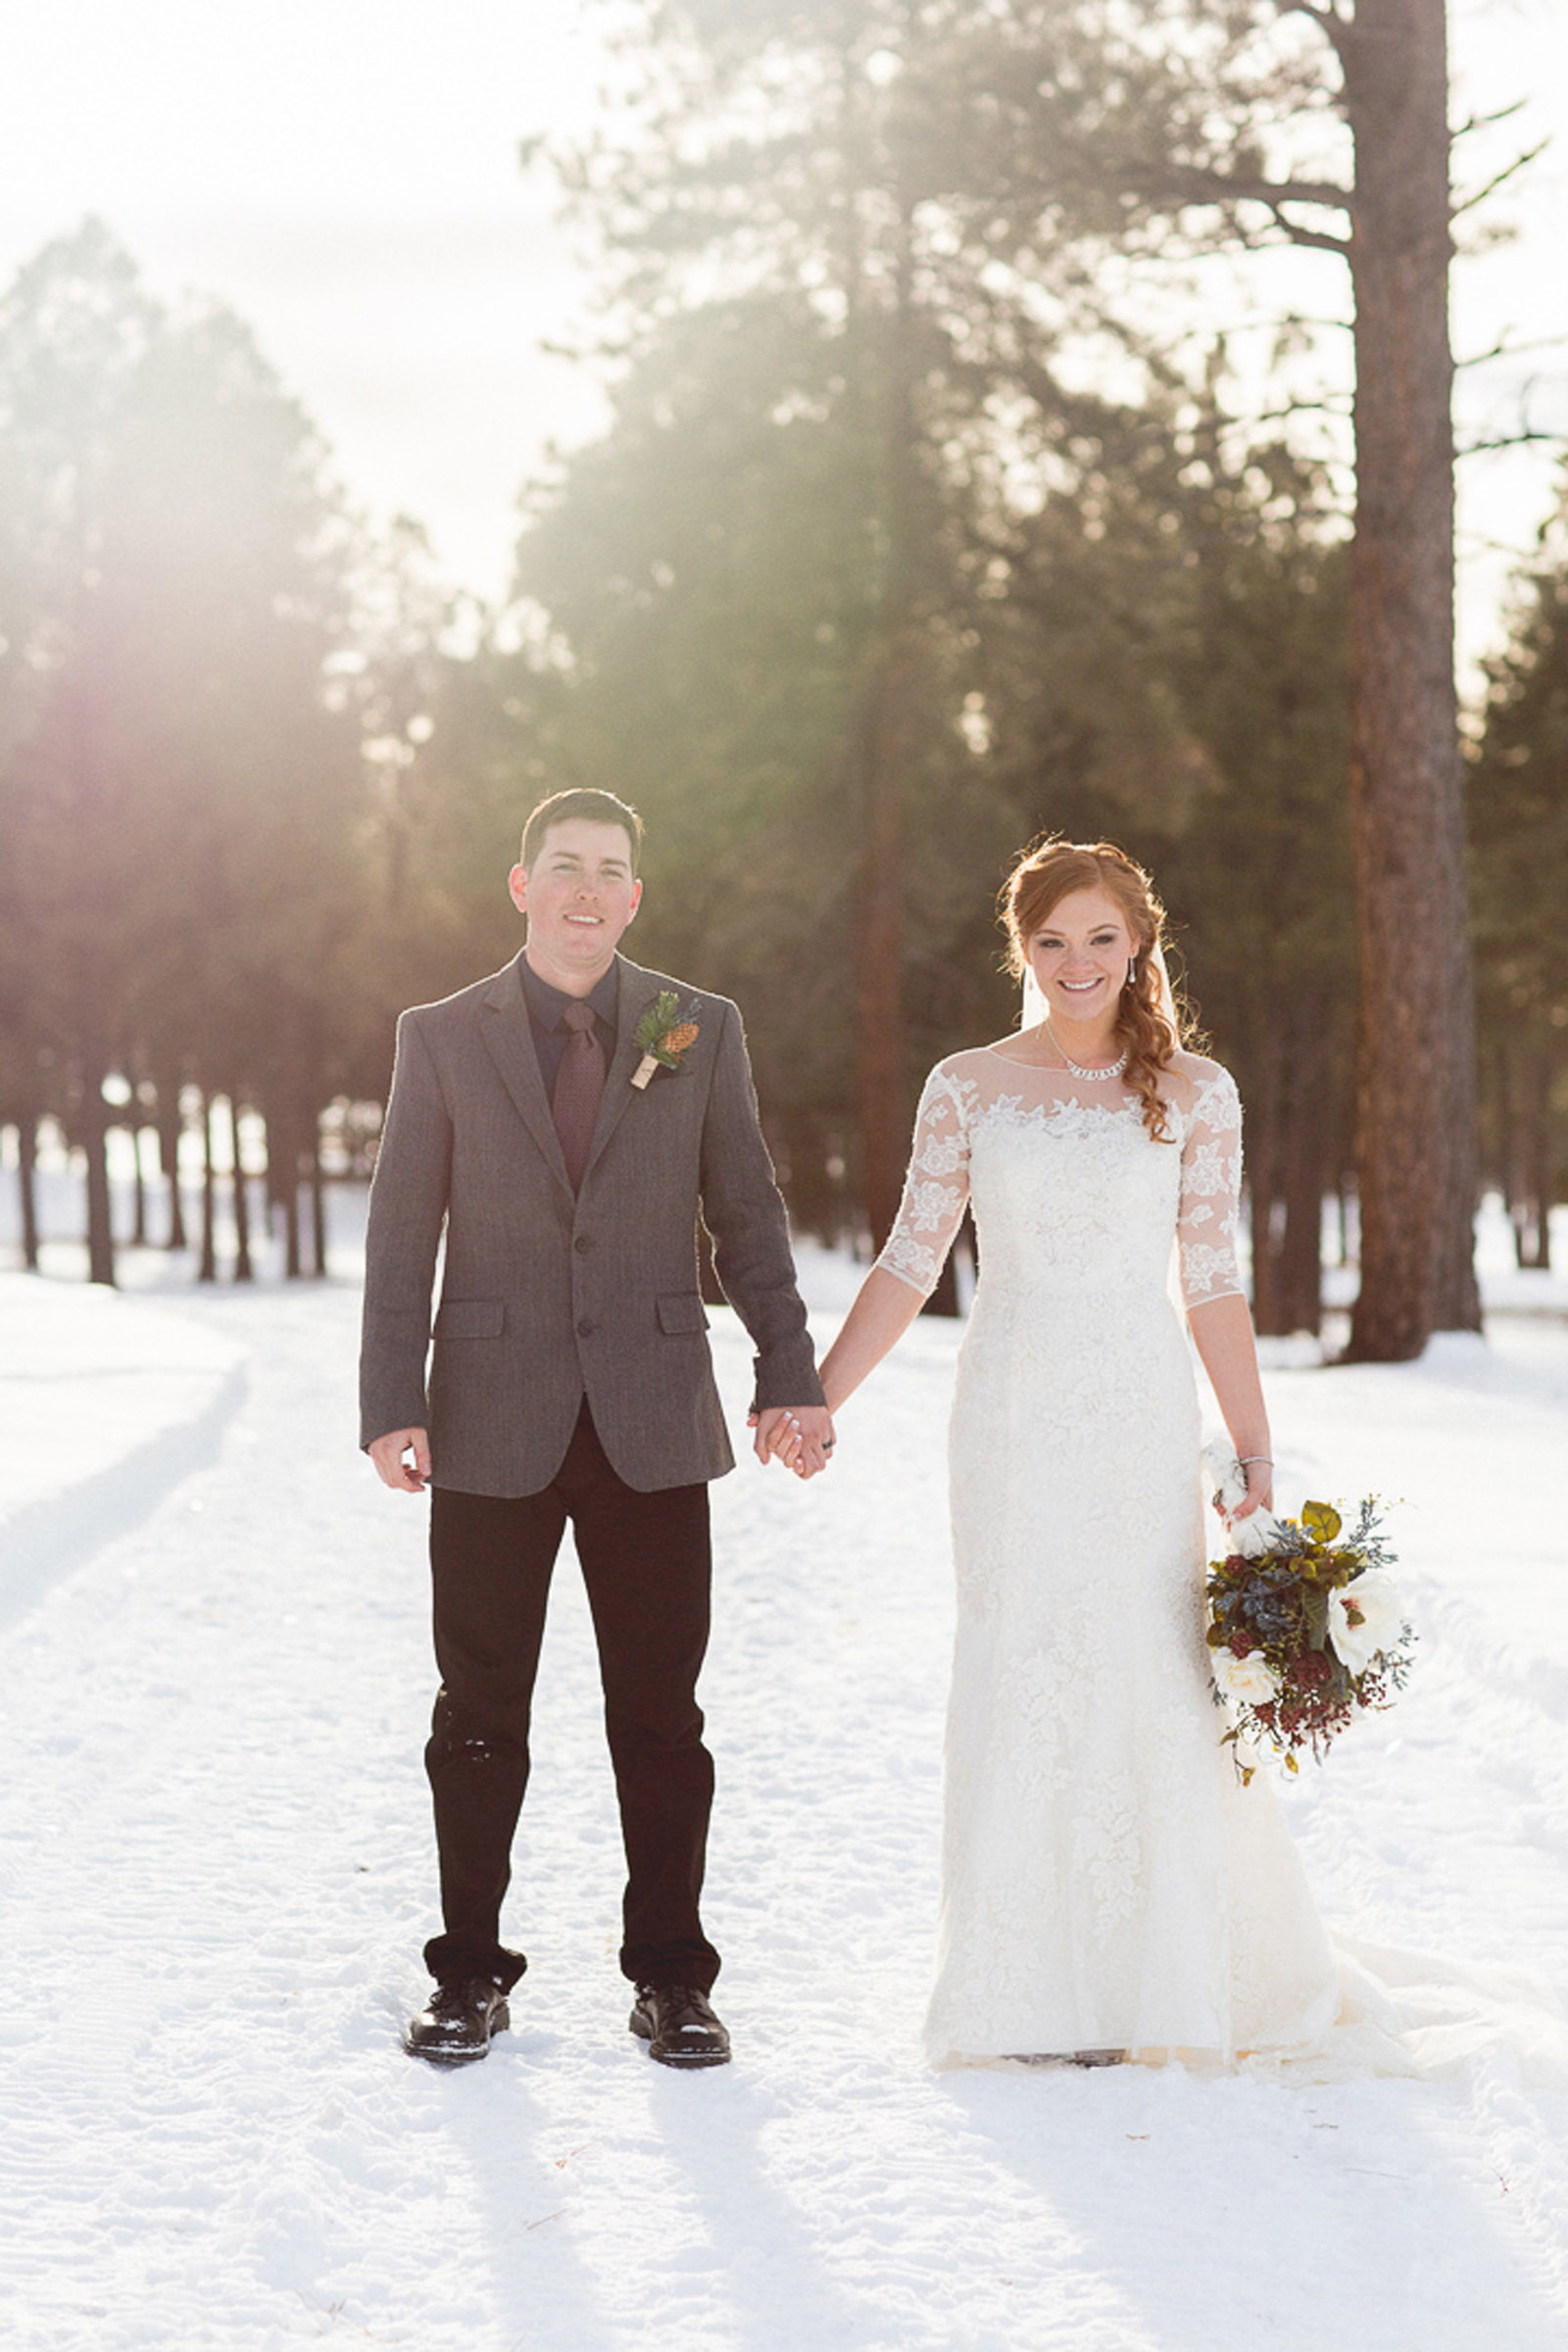 150-wedding-photographer-captures-newlyweds-in-snow-during-a-winter-snow-wedding-in-the-mountains-in-colorado